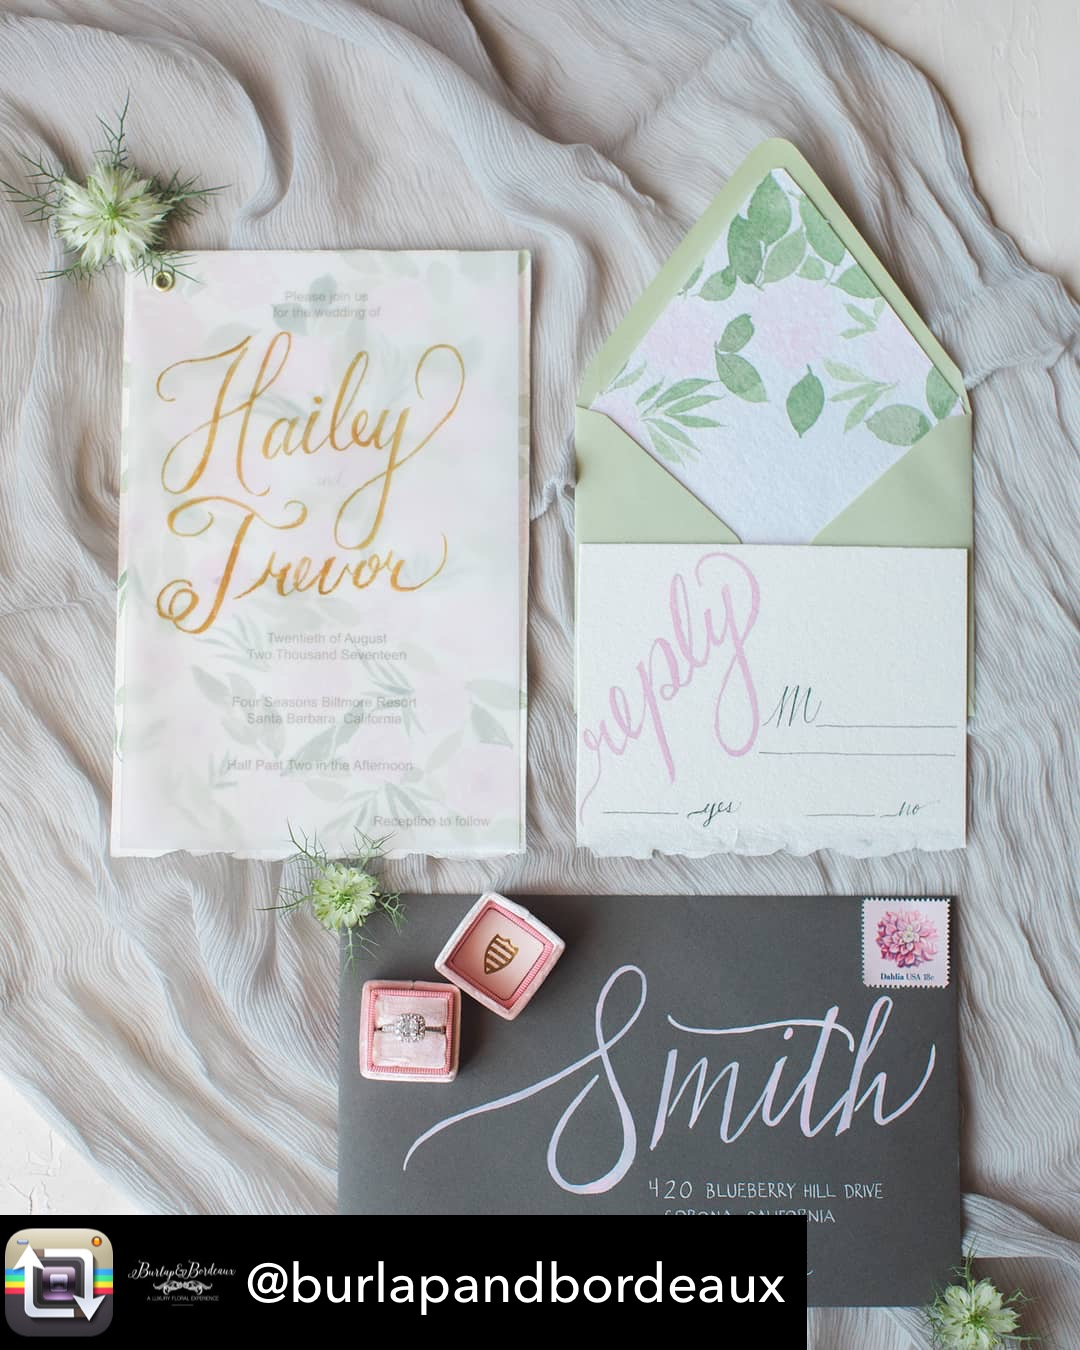 Watercolor florals and hand calligraphy